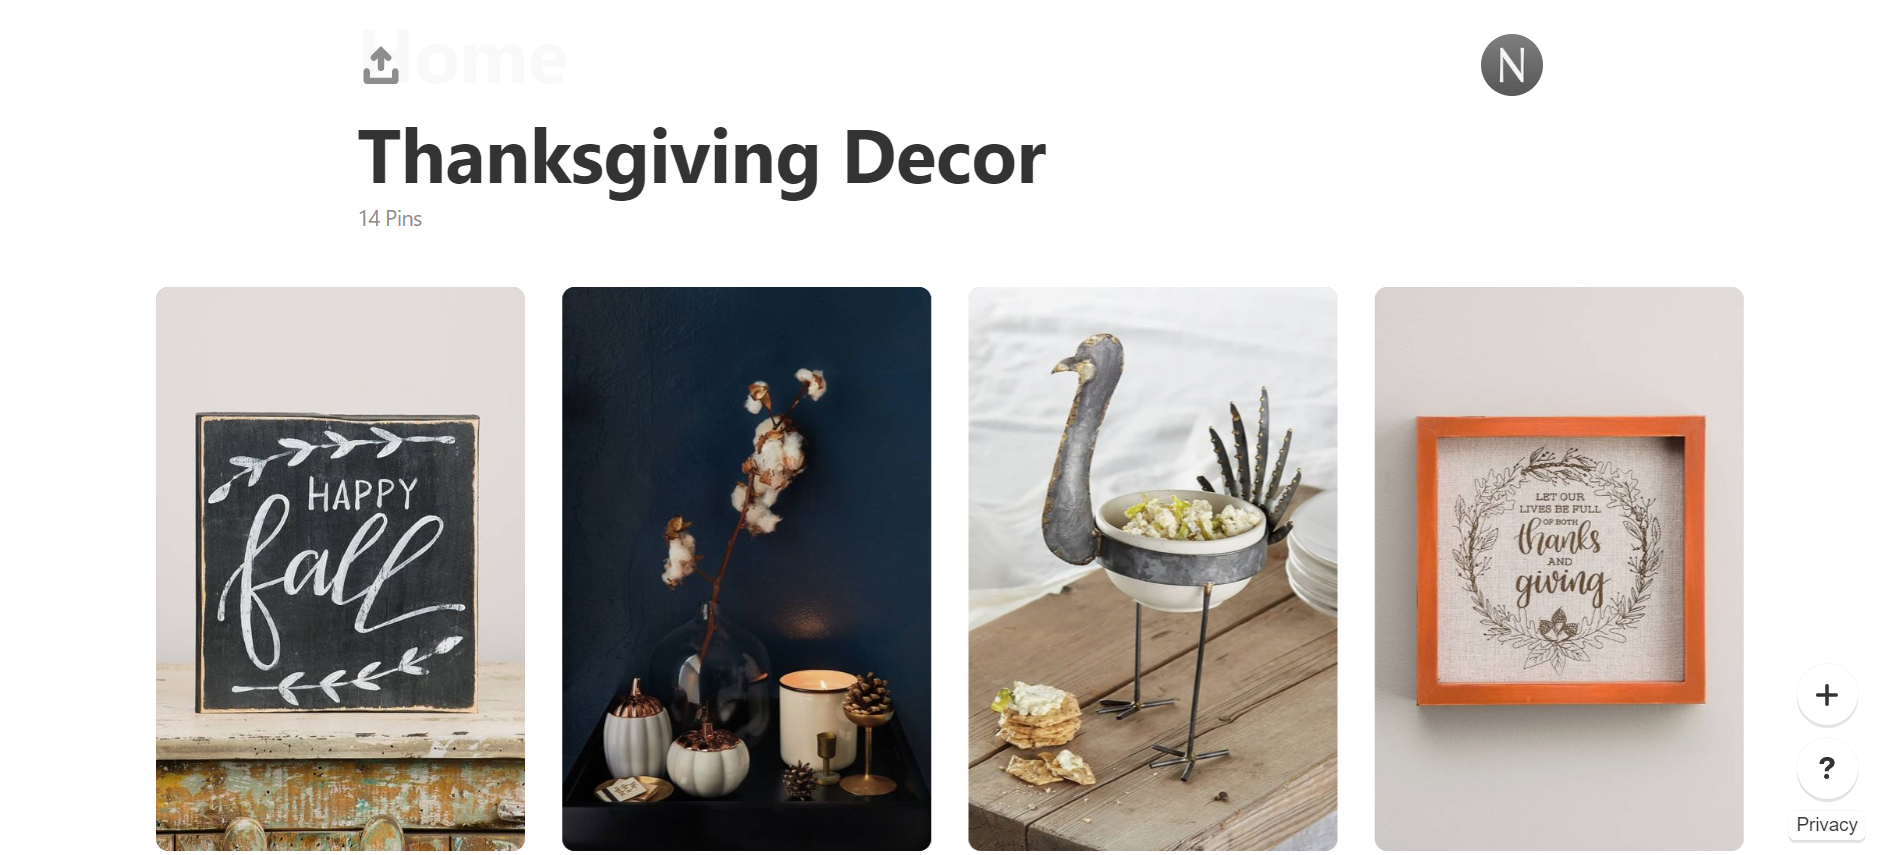 Nordstrom is one of the great online stores on Pinterest